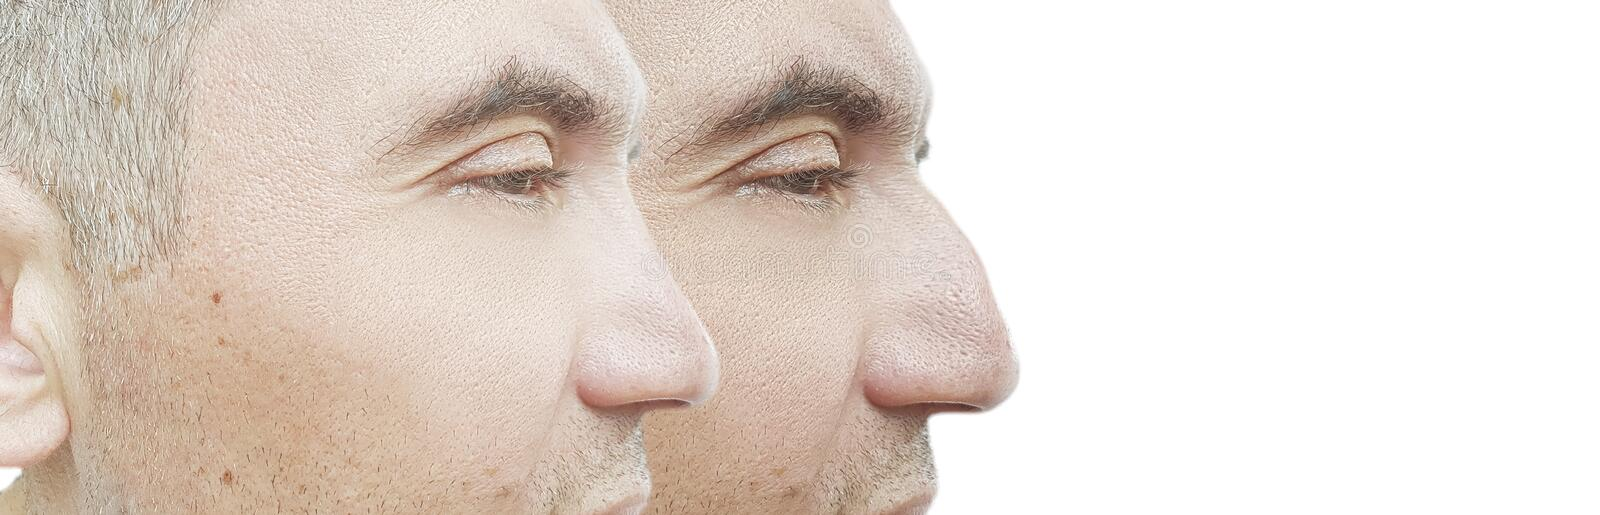 Man nose hump before and after treatment comparative. Man nose hump before and after treatment collage comparative royalty free stock photo